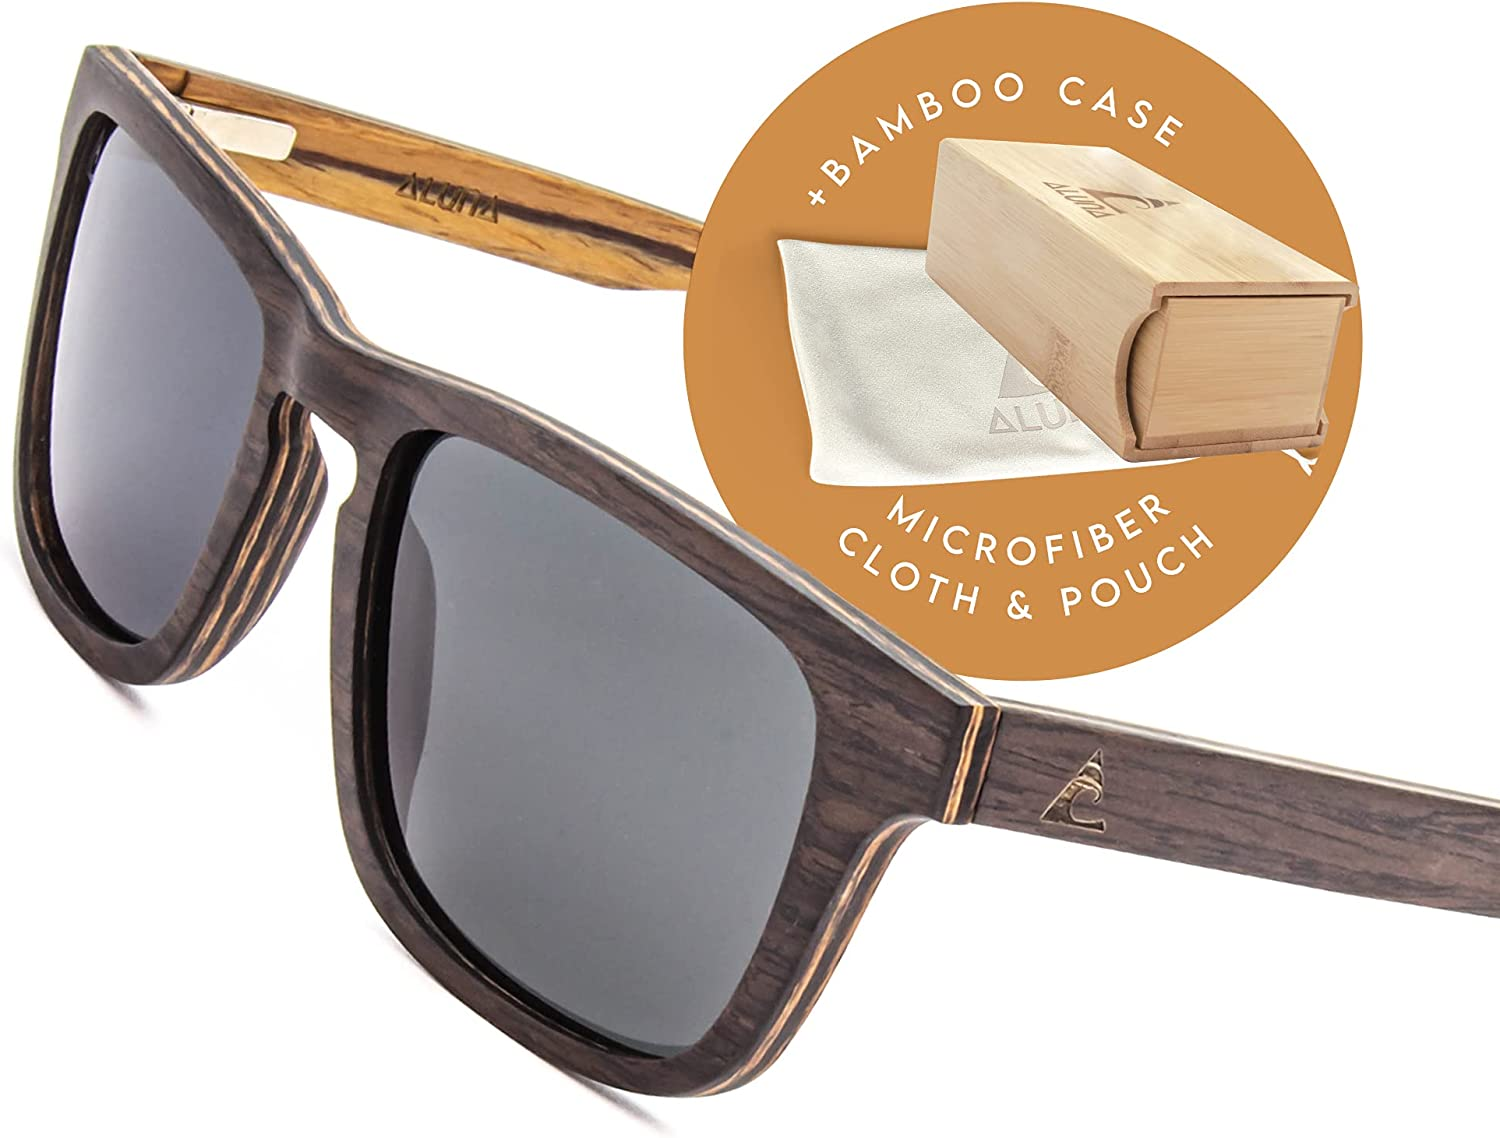 Aluna – Exotic Wood Sunglasses for Women and Men, Wooden Sunglasses with Hd Polarized Lenses